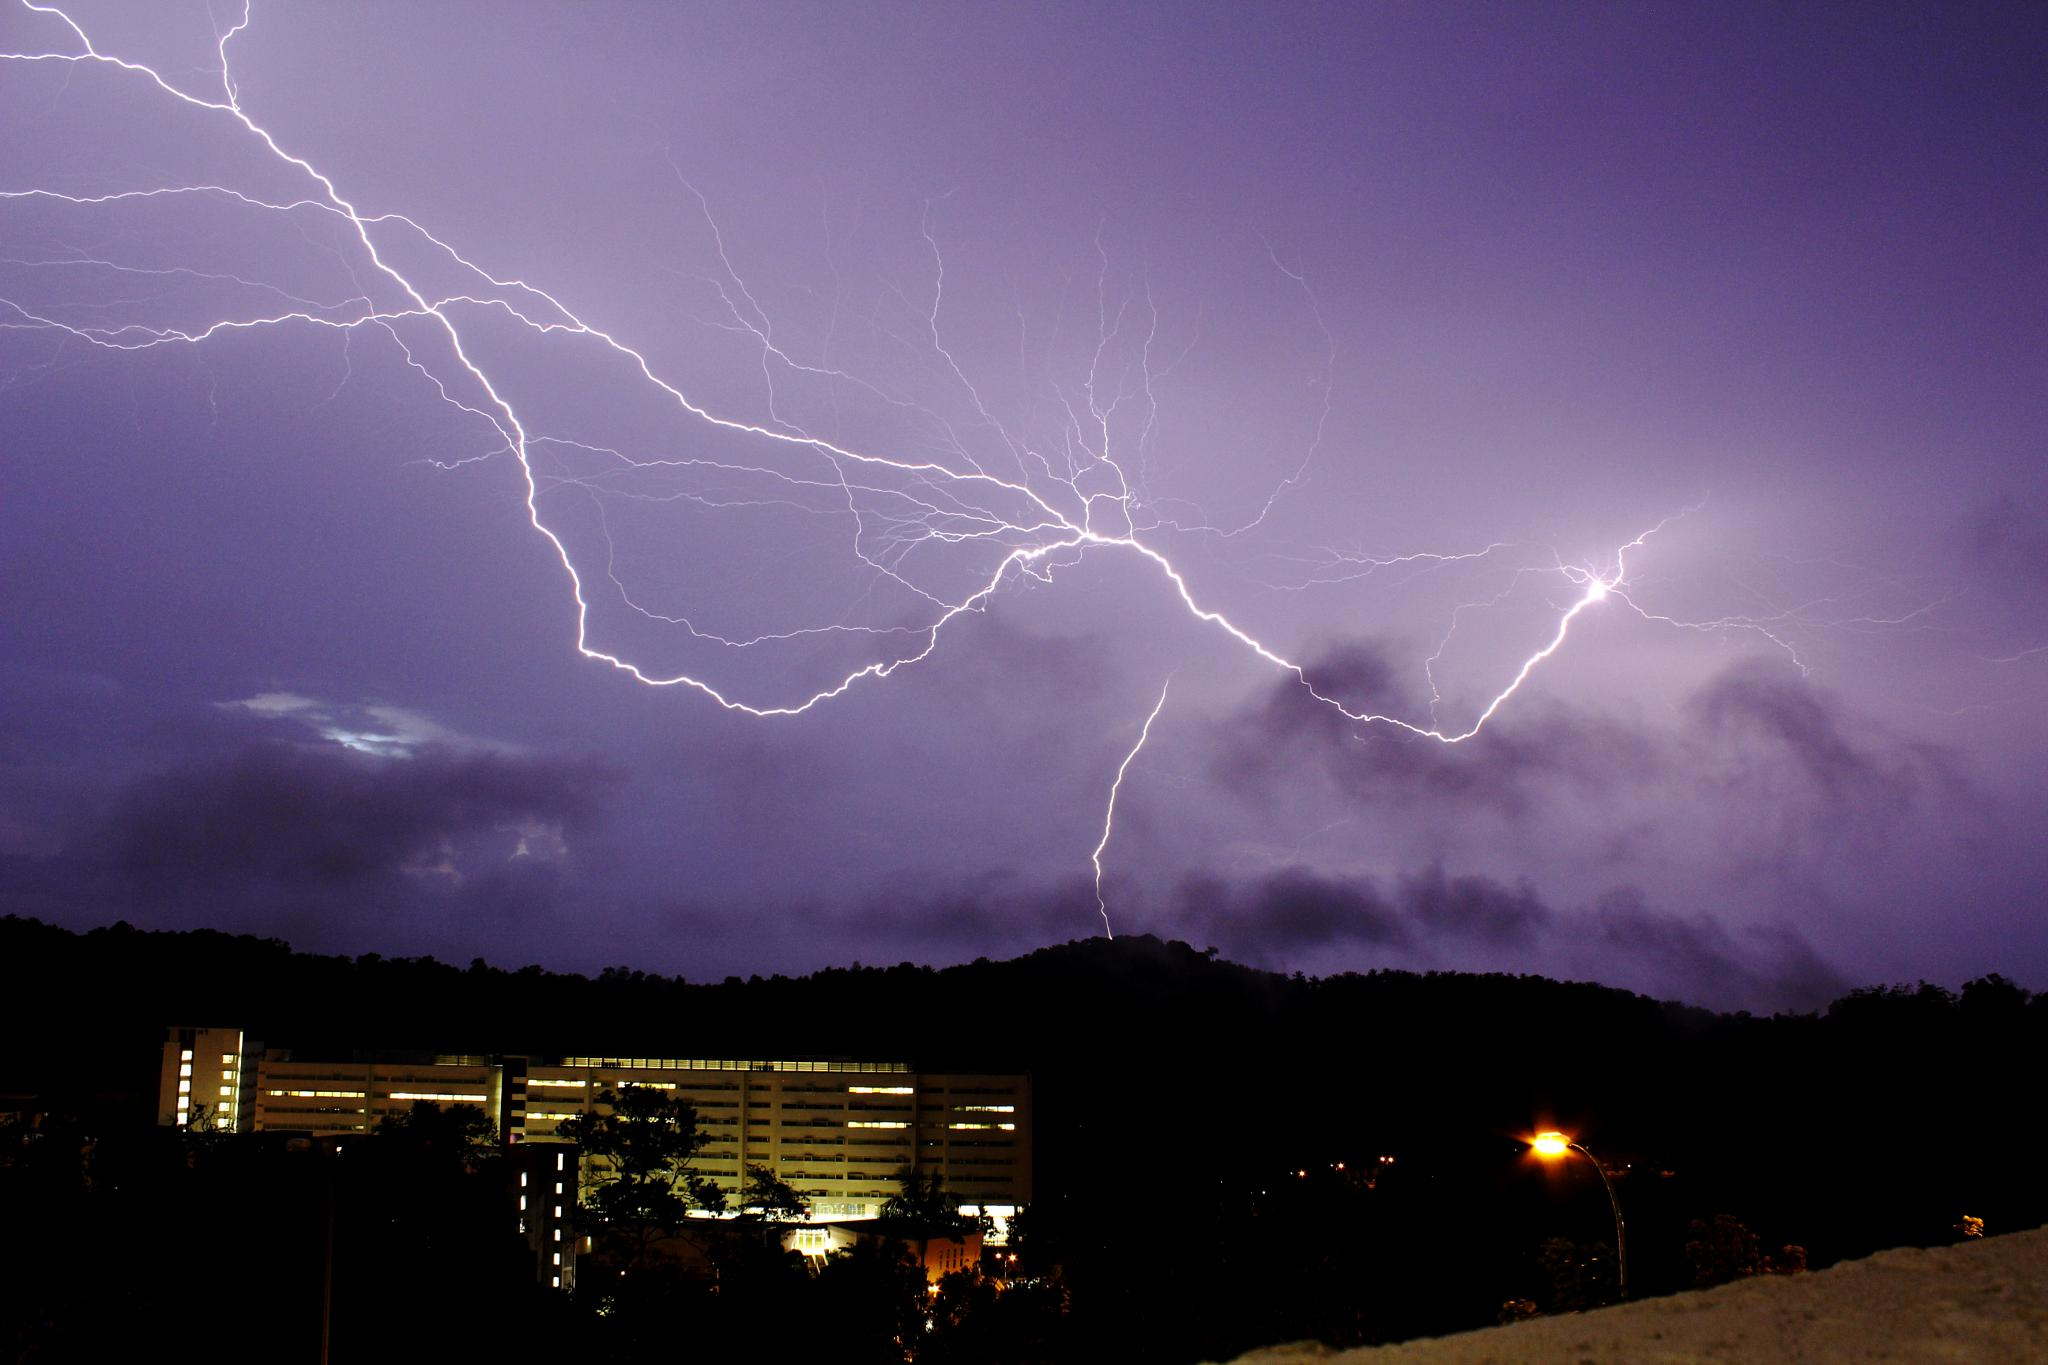 The Perfect Lightning by ILHAMYUSOF